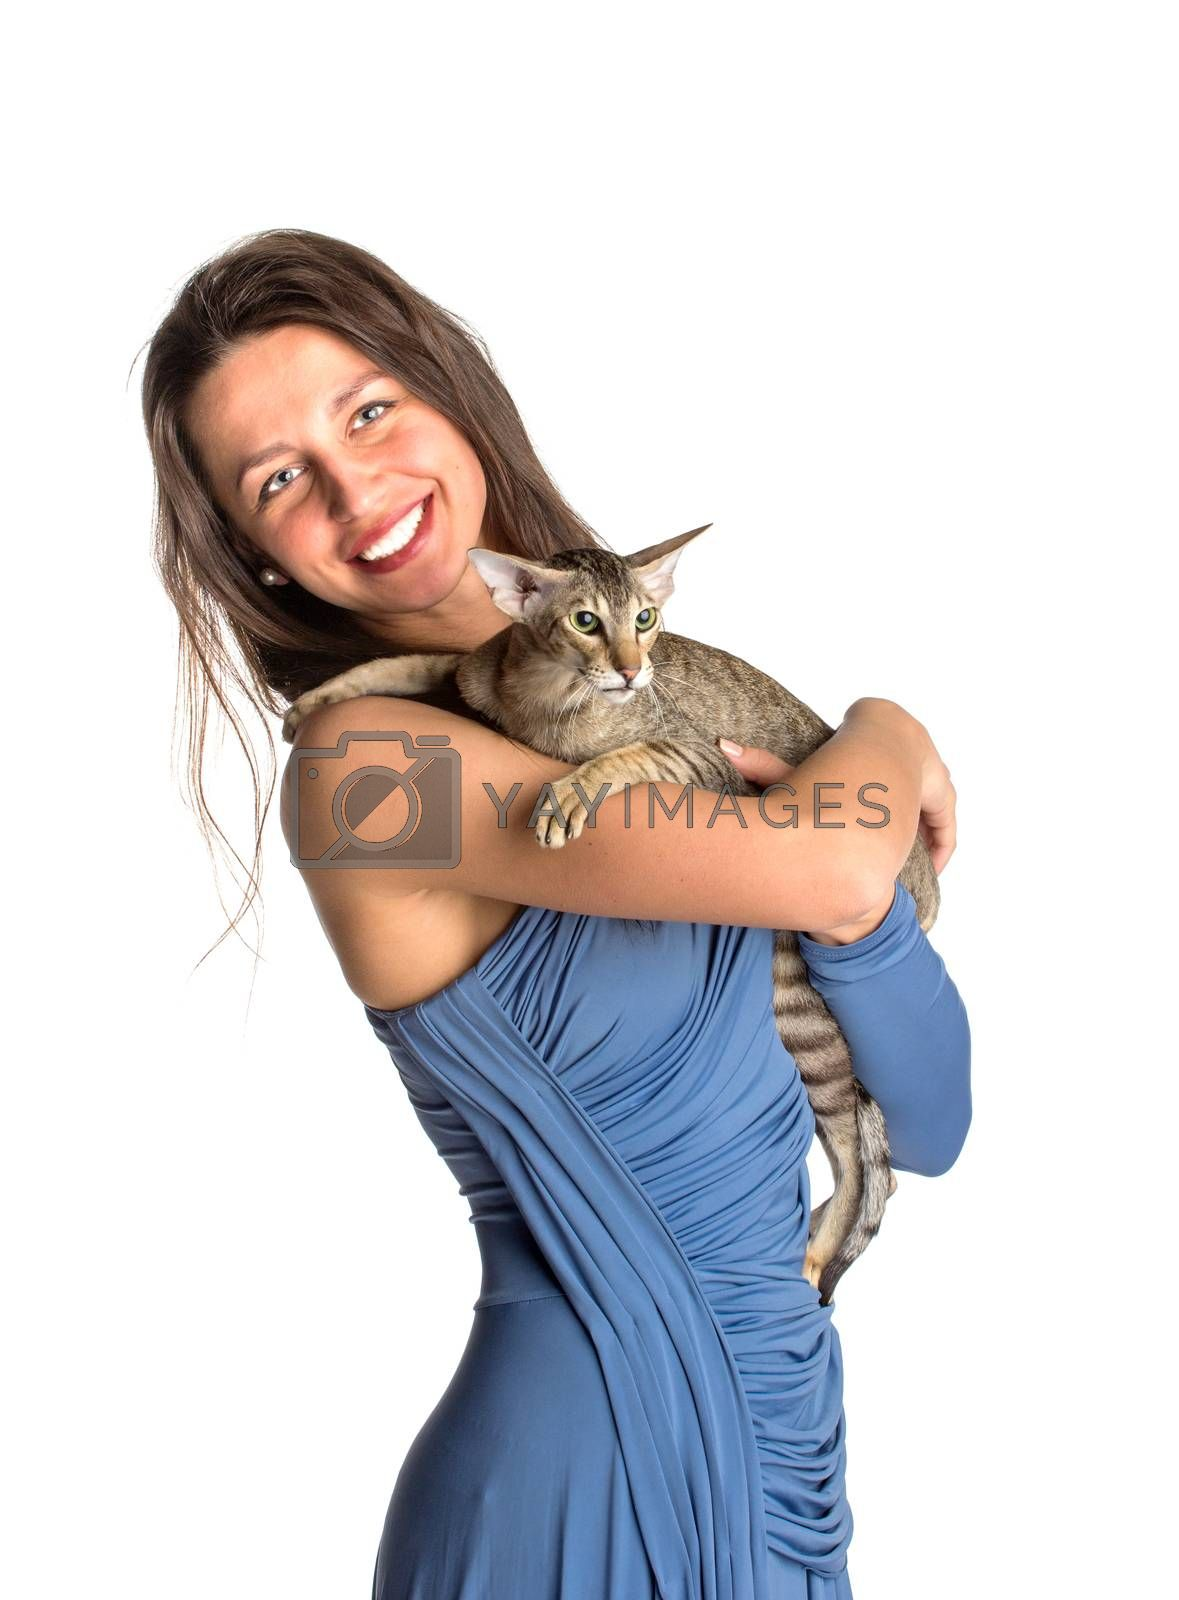 Royalty free image of Pretty girl in blue night dress with cat by gsdonlin